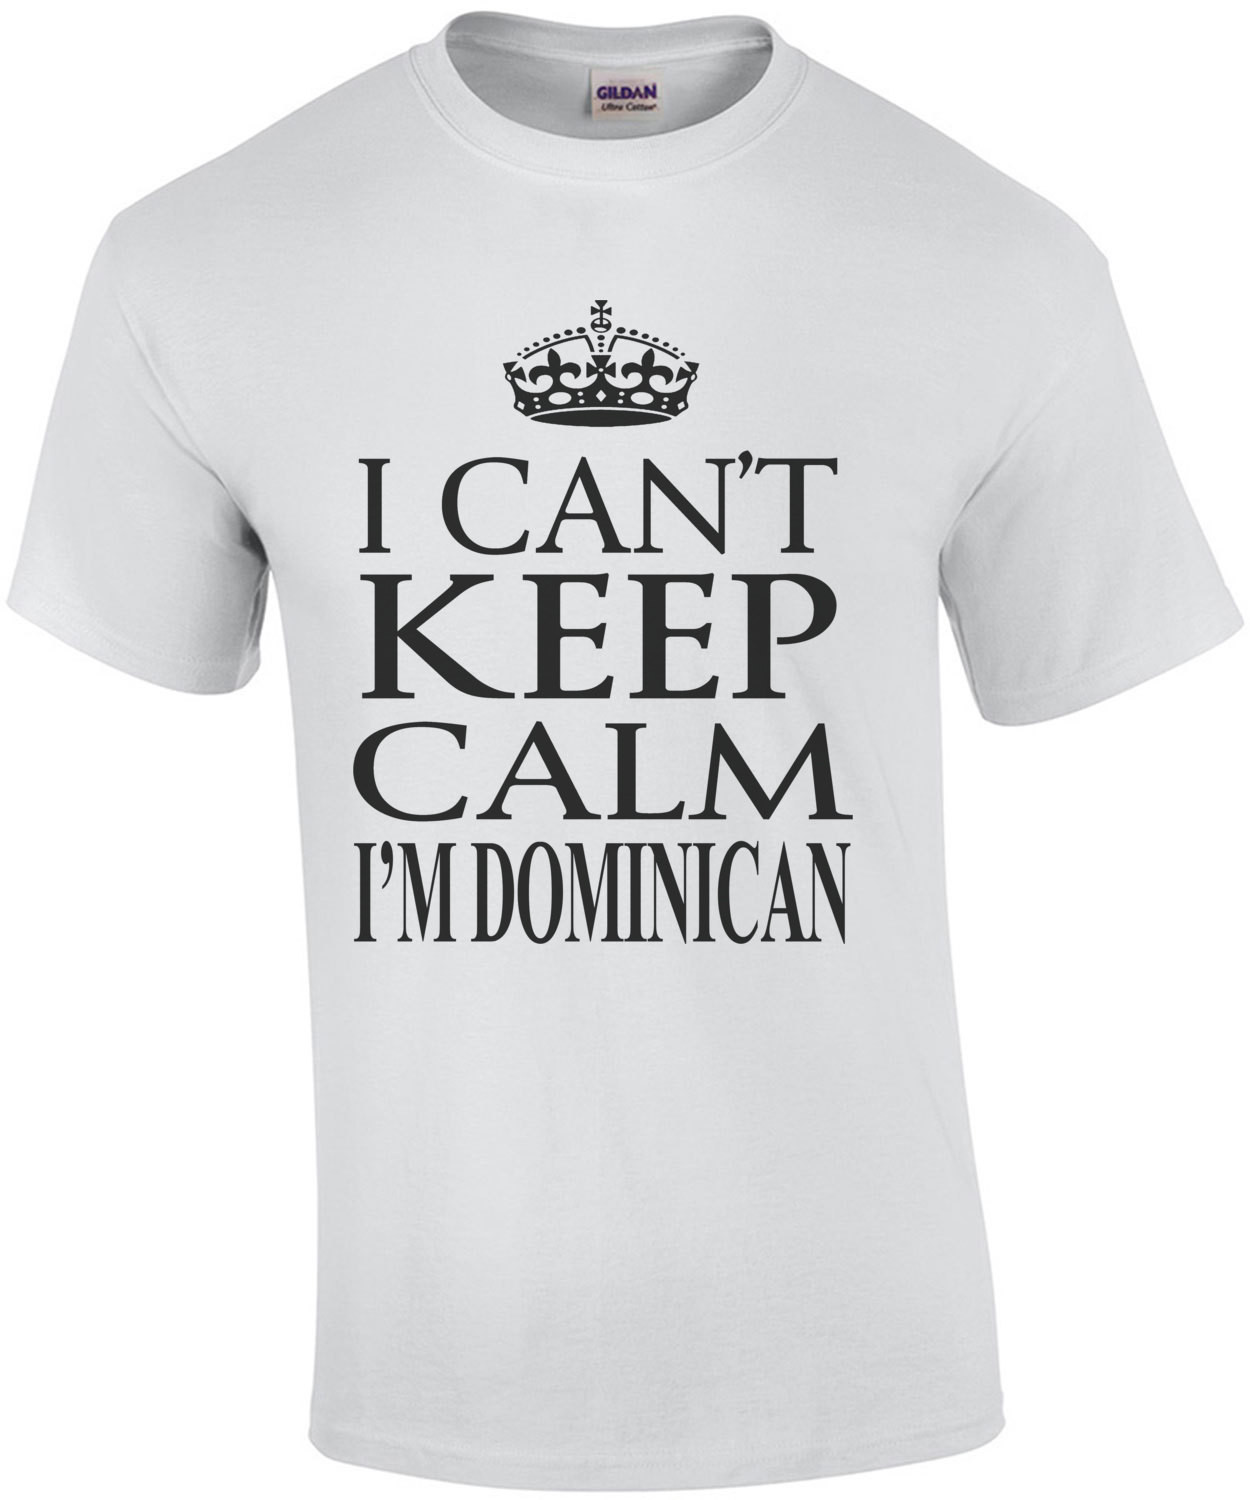 I Cant Keep Calm I'm Dominican T-Shirt